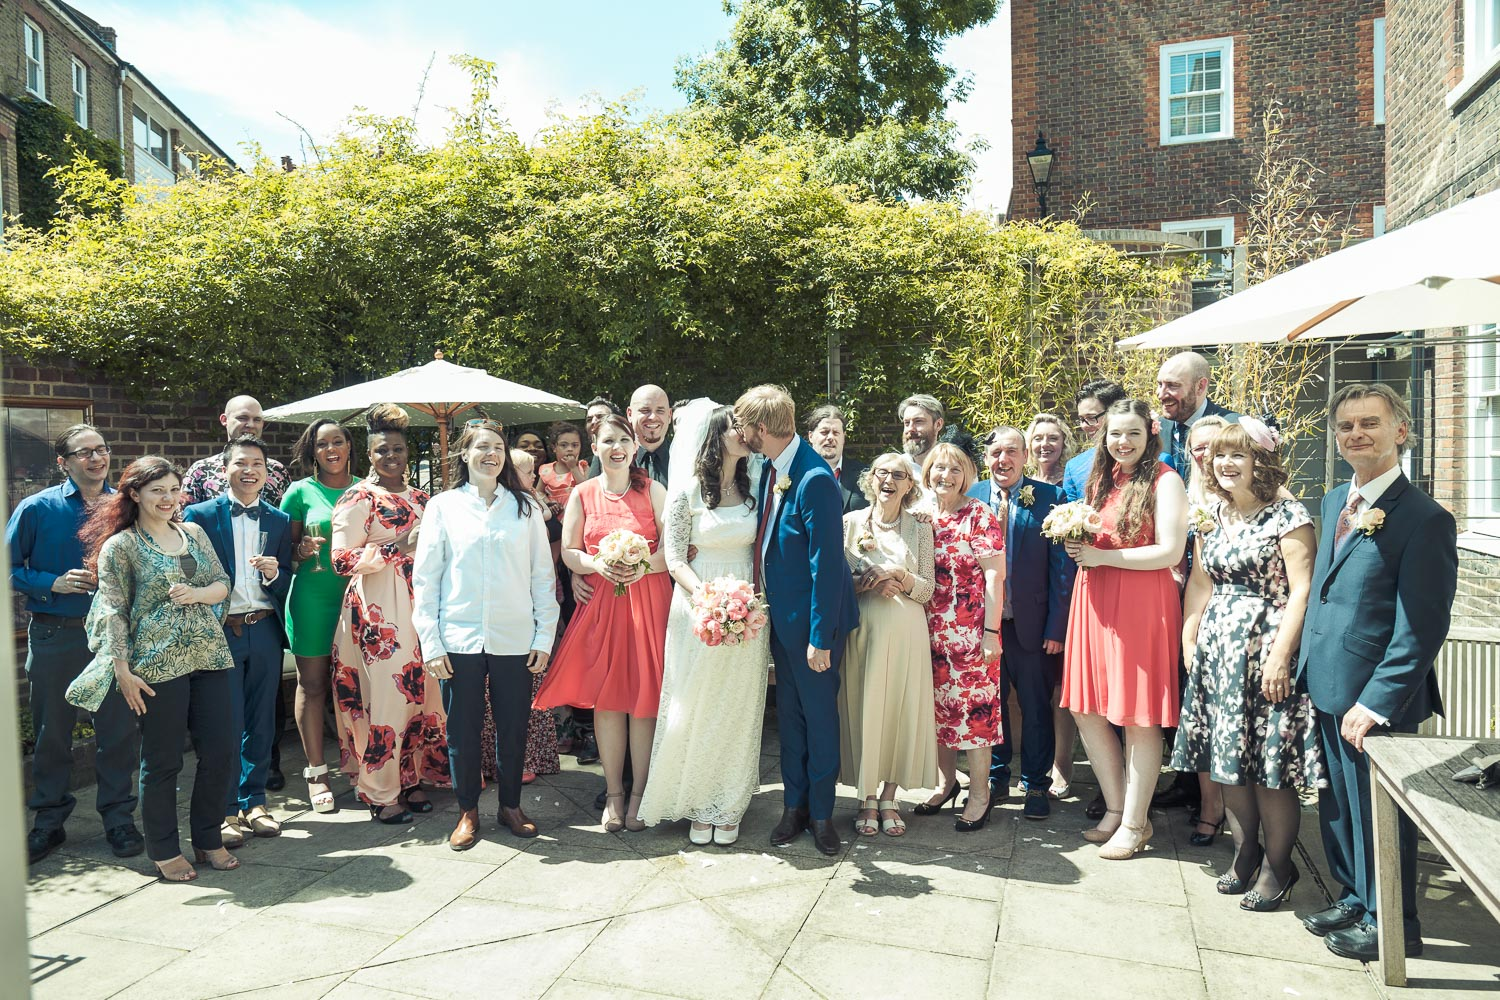 burgh-house-hampstead-north-london-wedding-0110.jpg